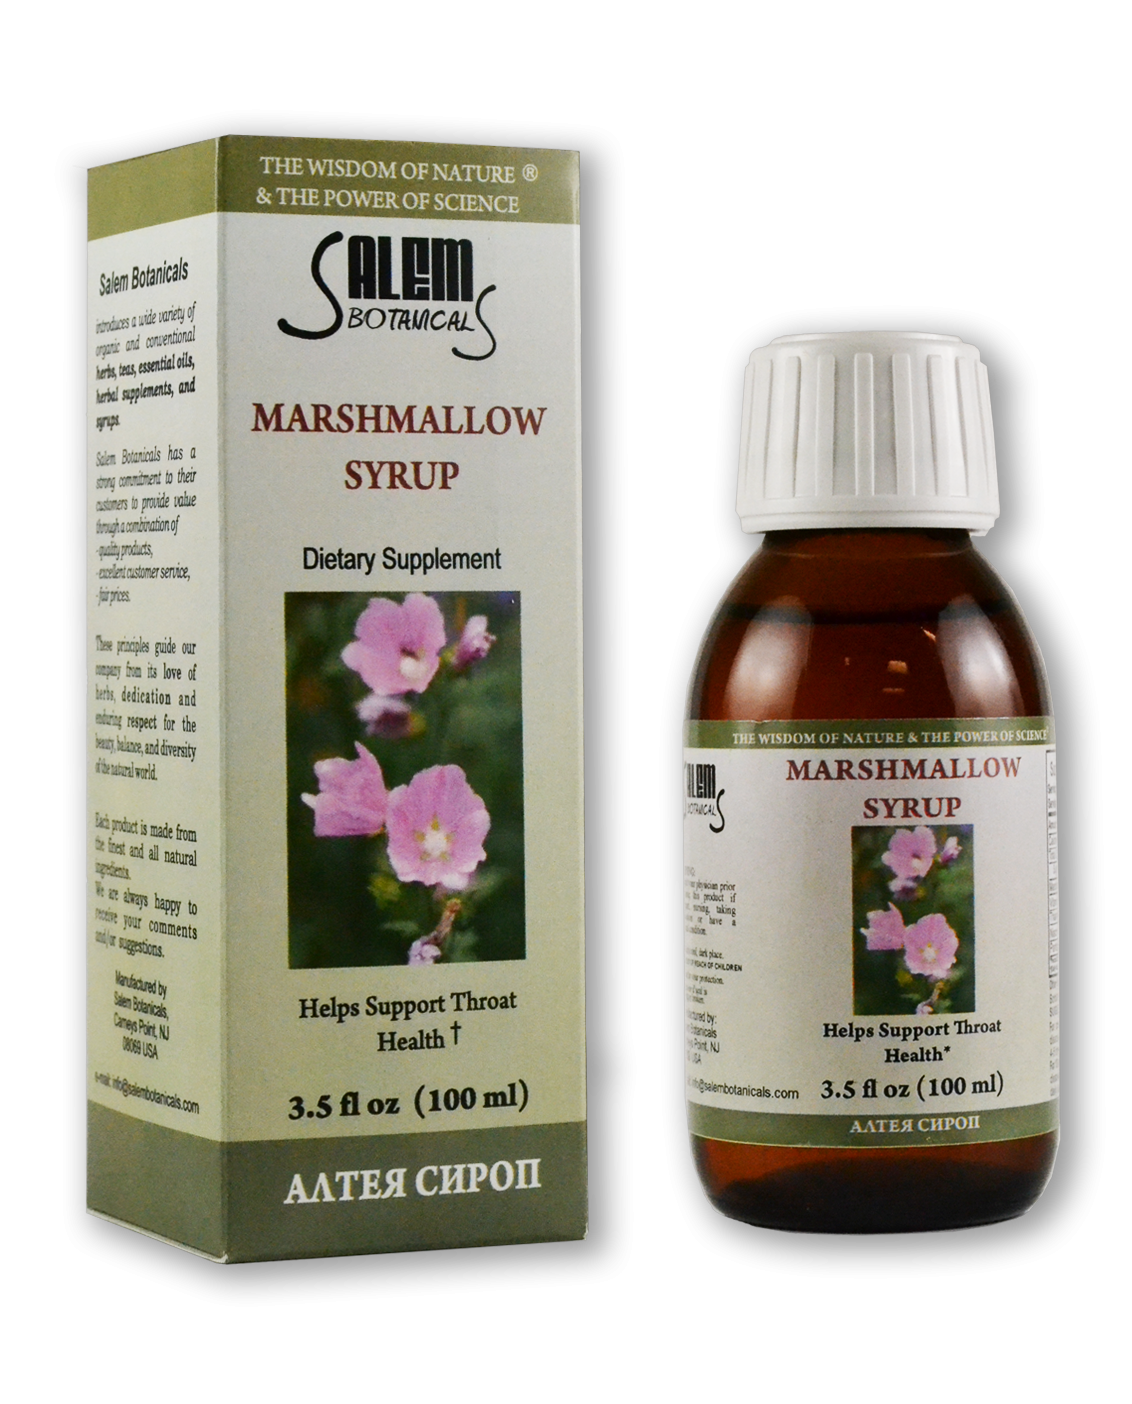 Marshmallow Syrup Herbal Syrups